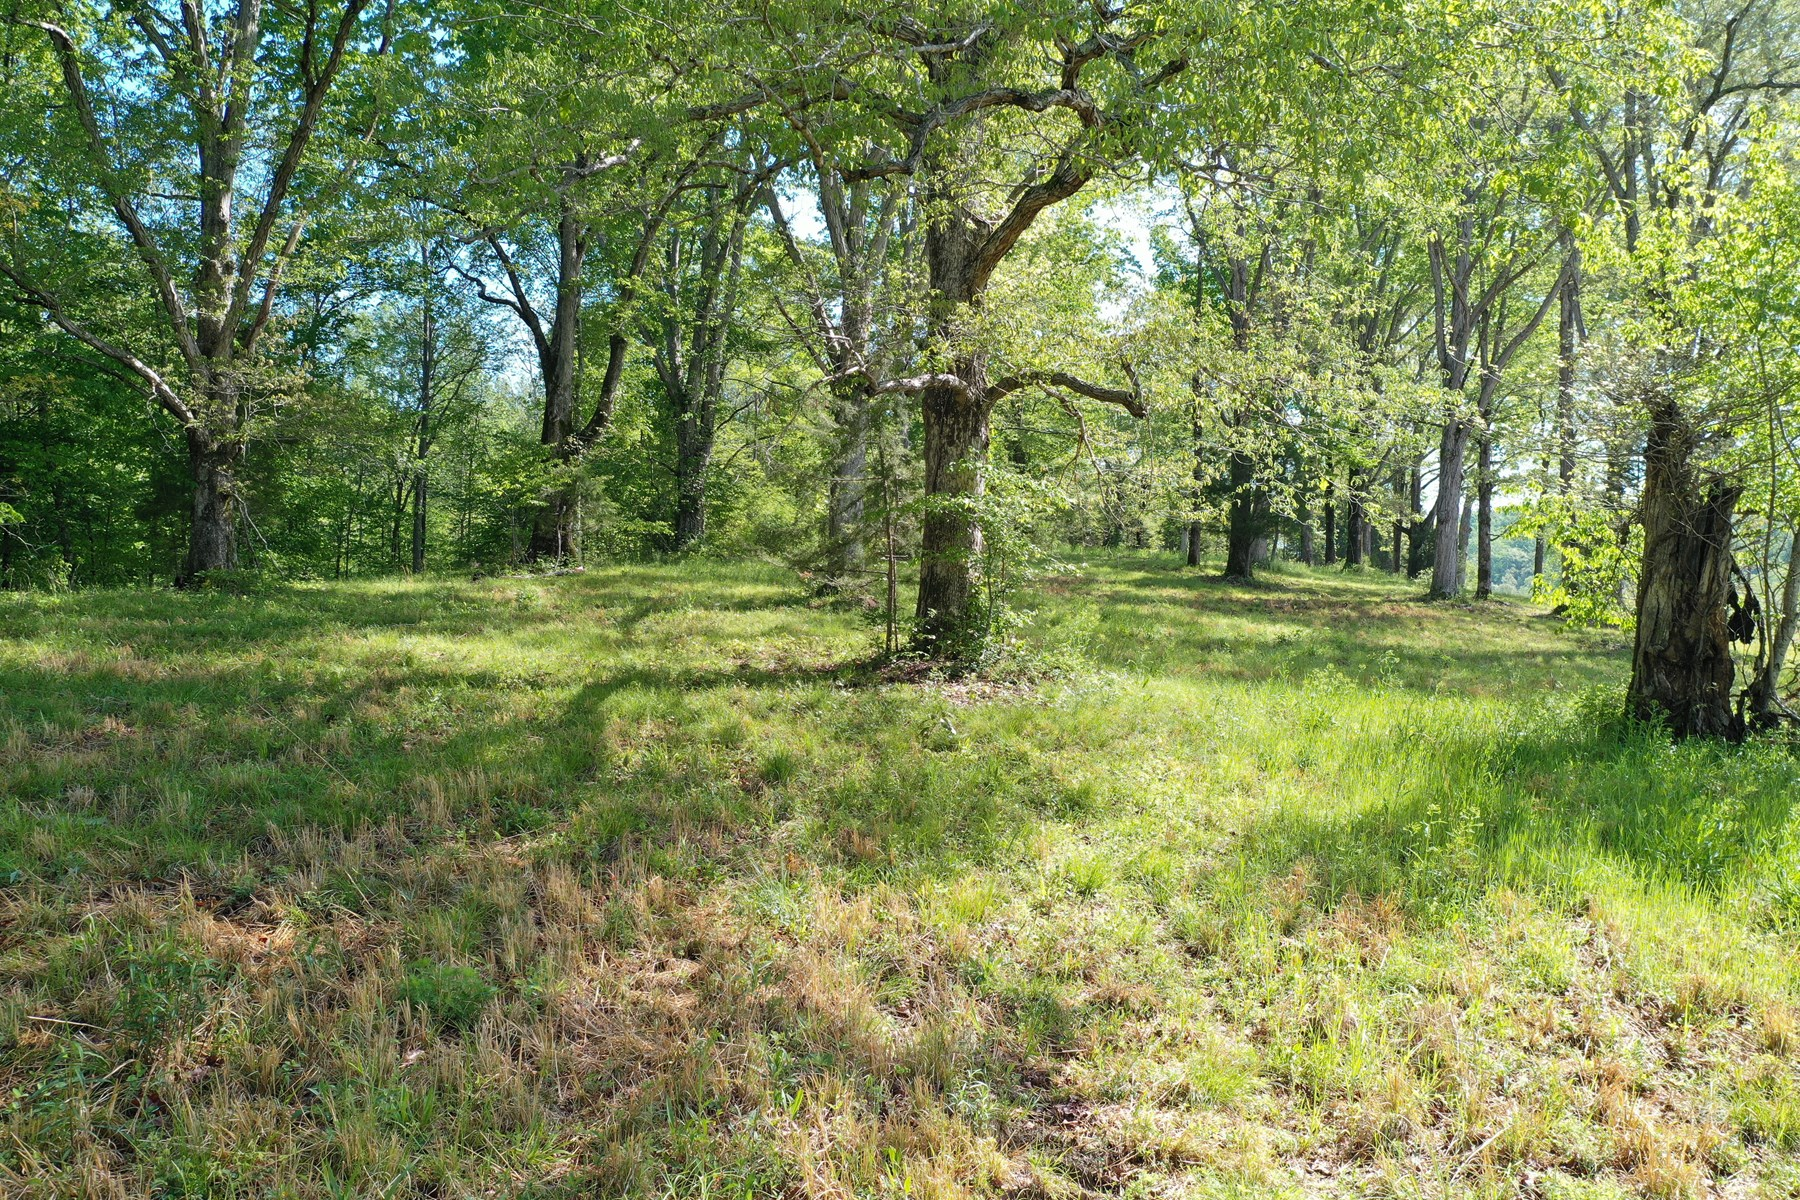 71.74 Acres vacant land for sale in Tn with Owner Terms!